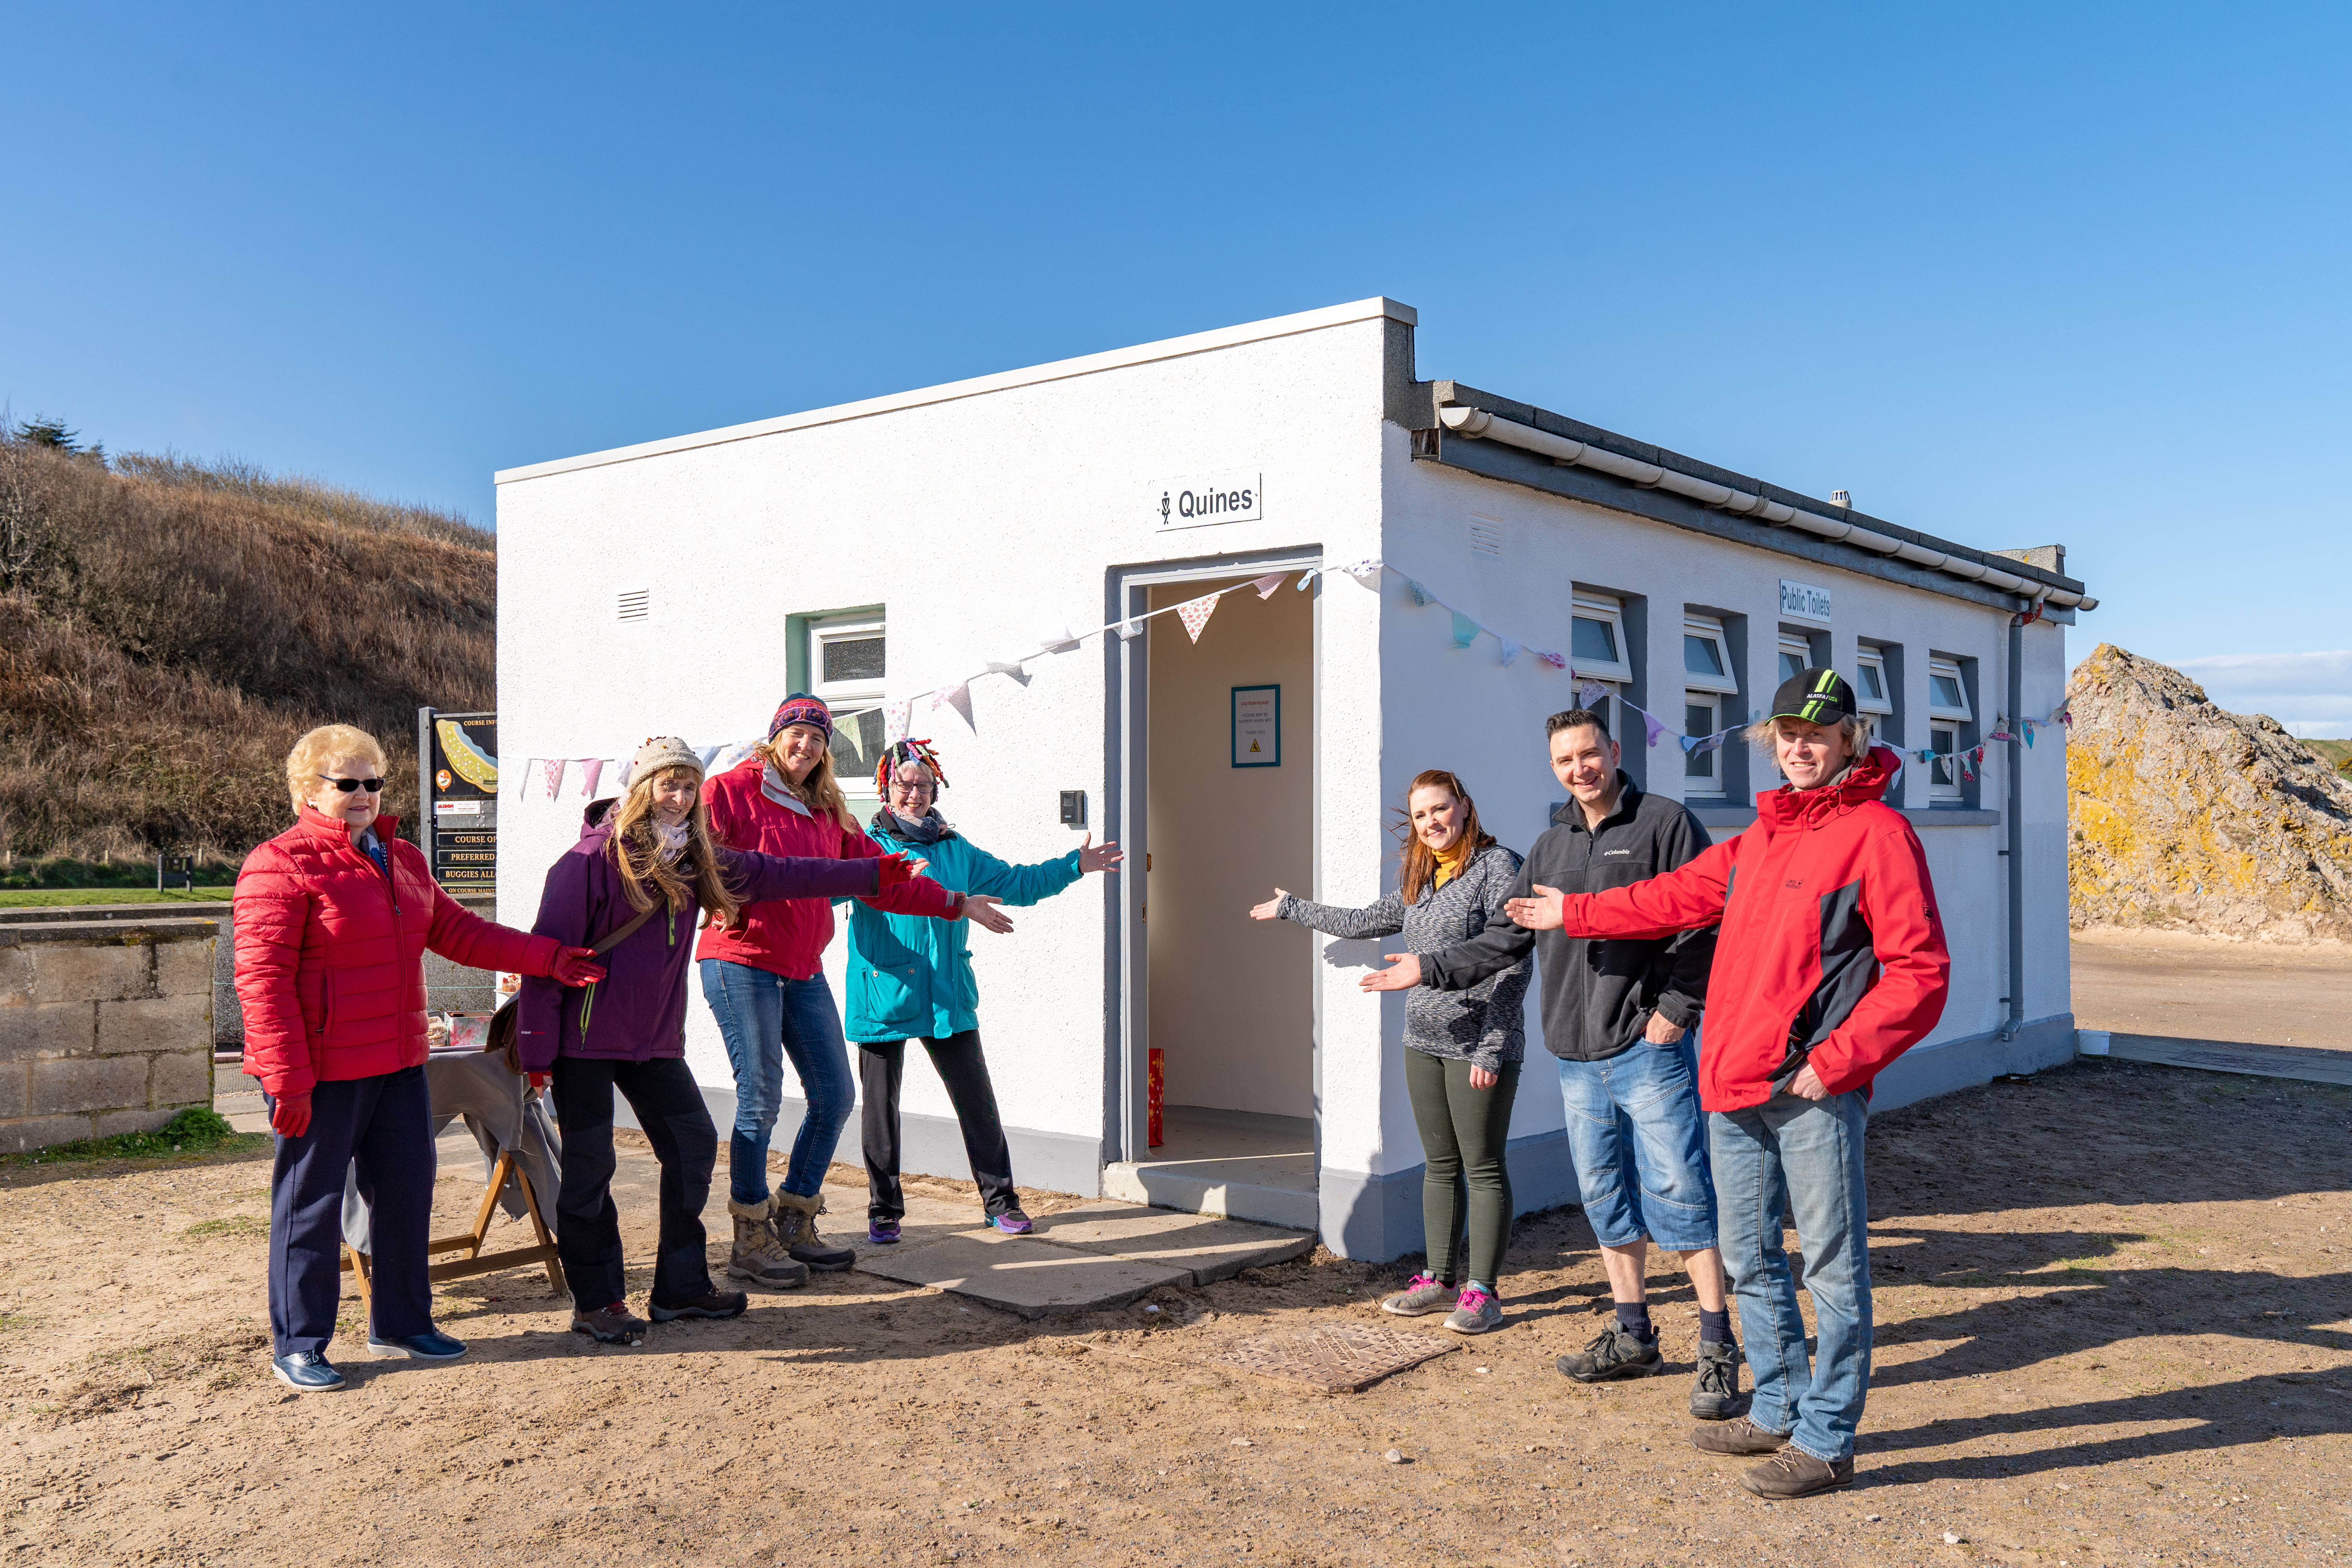 Cullen volunteers are the grand re-opening of their toilets